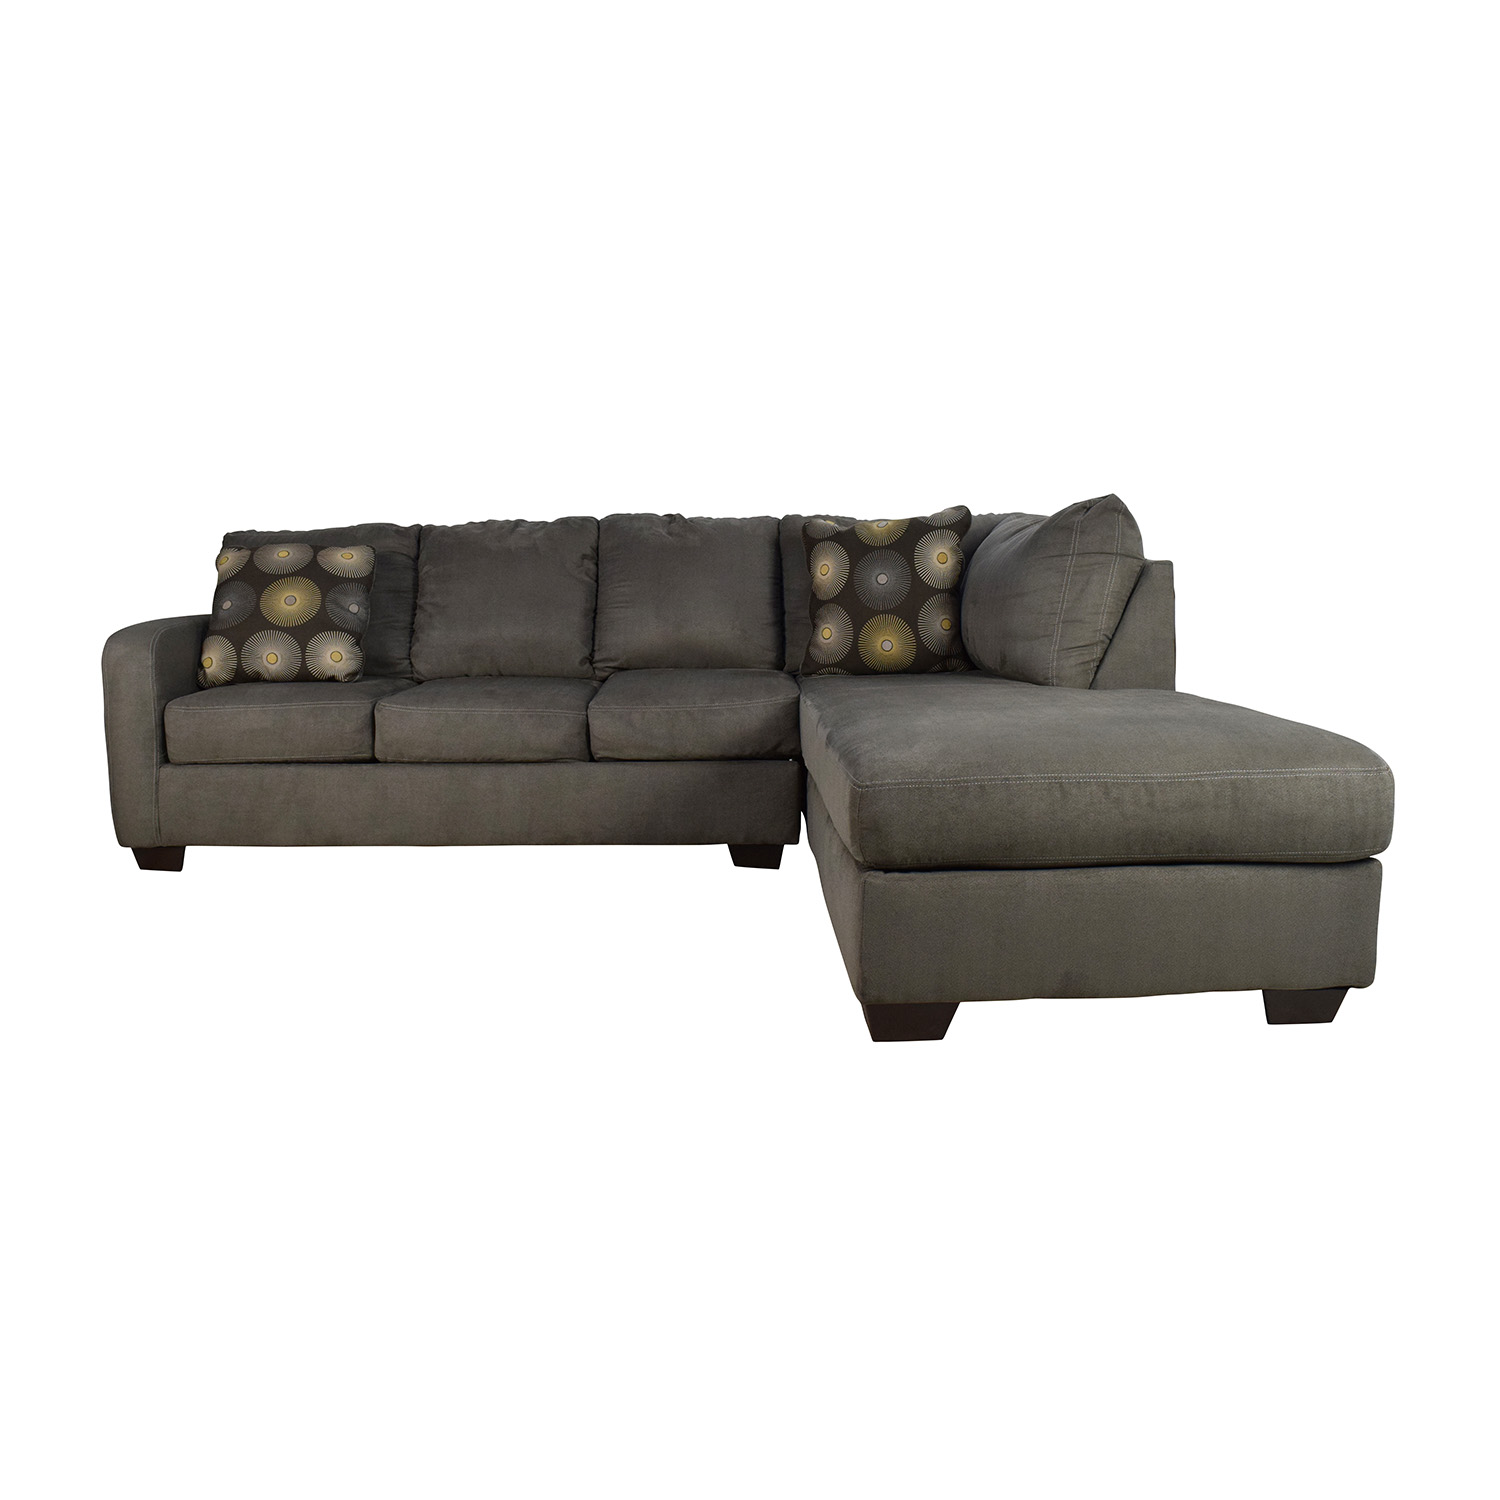 maier oh store best dealer couches ashley sectional furniture mentor product package